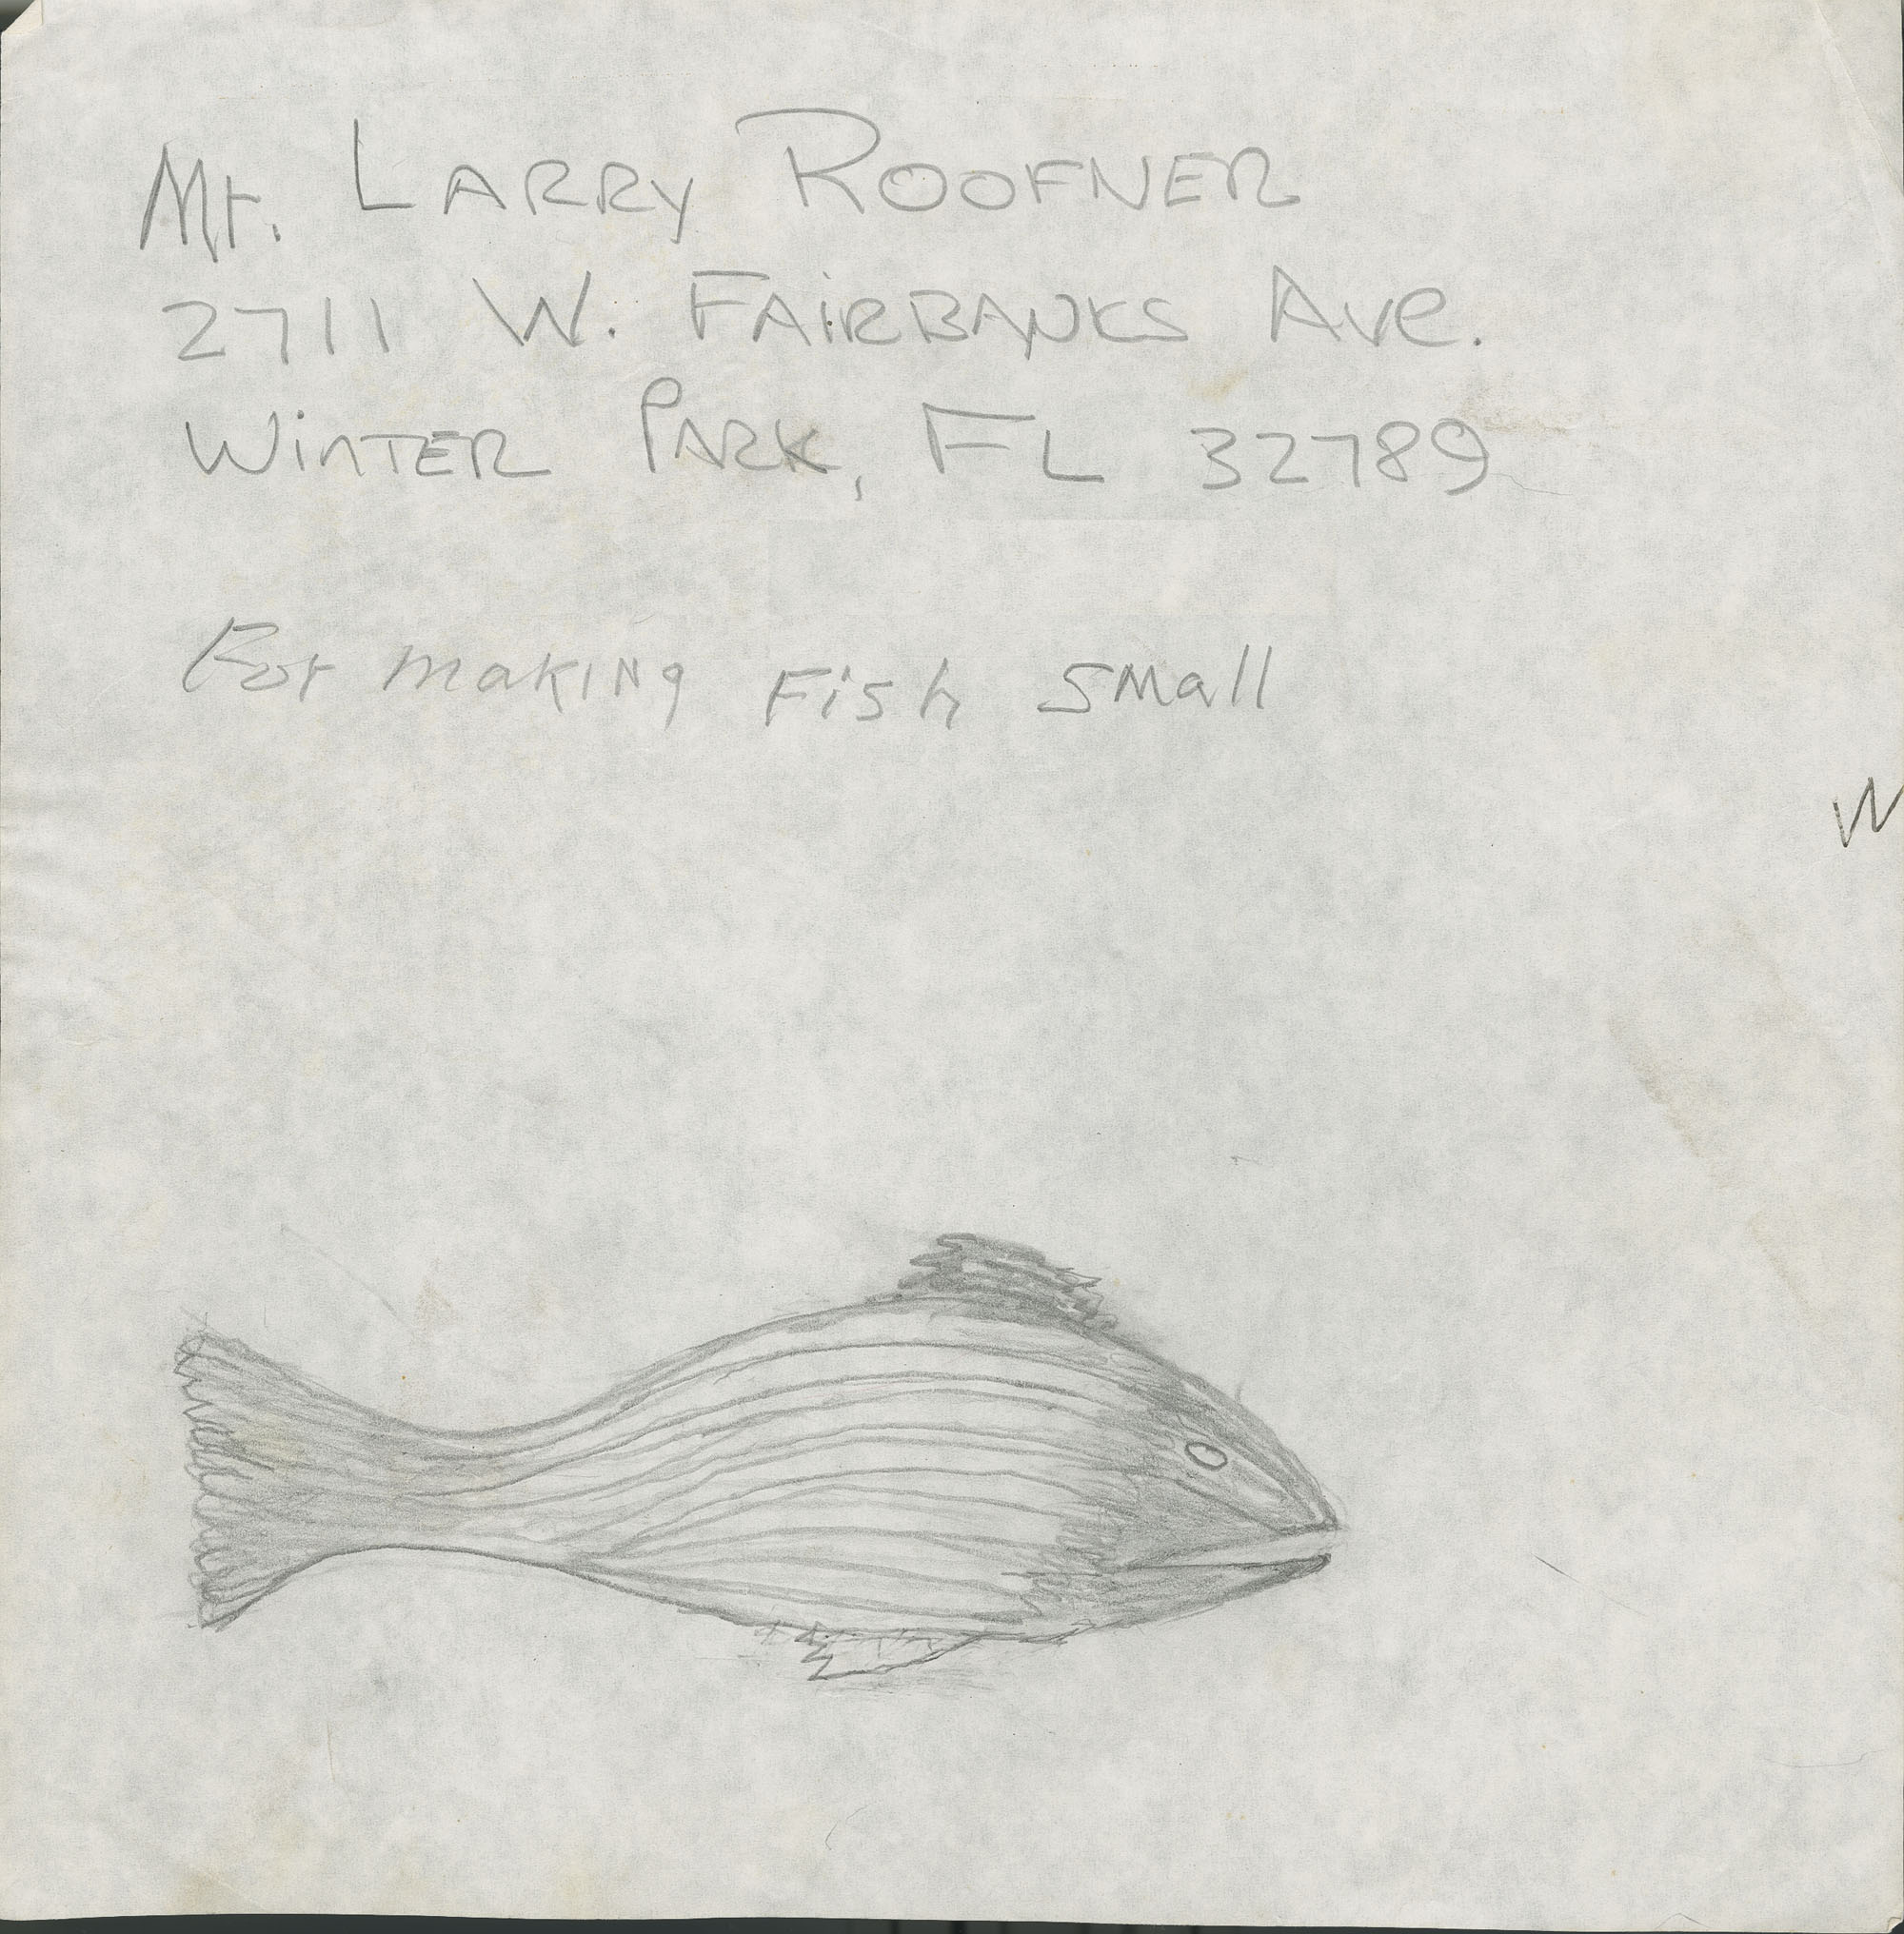 2711 West Fairbanks Avenue, Winter Park, Florida fish sketch